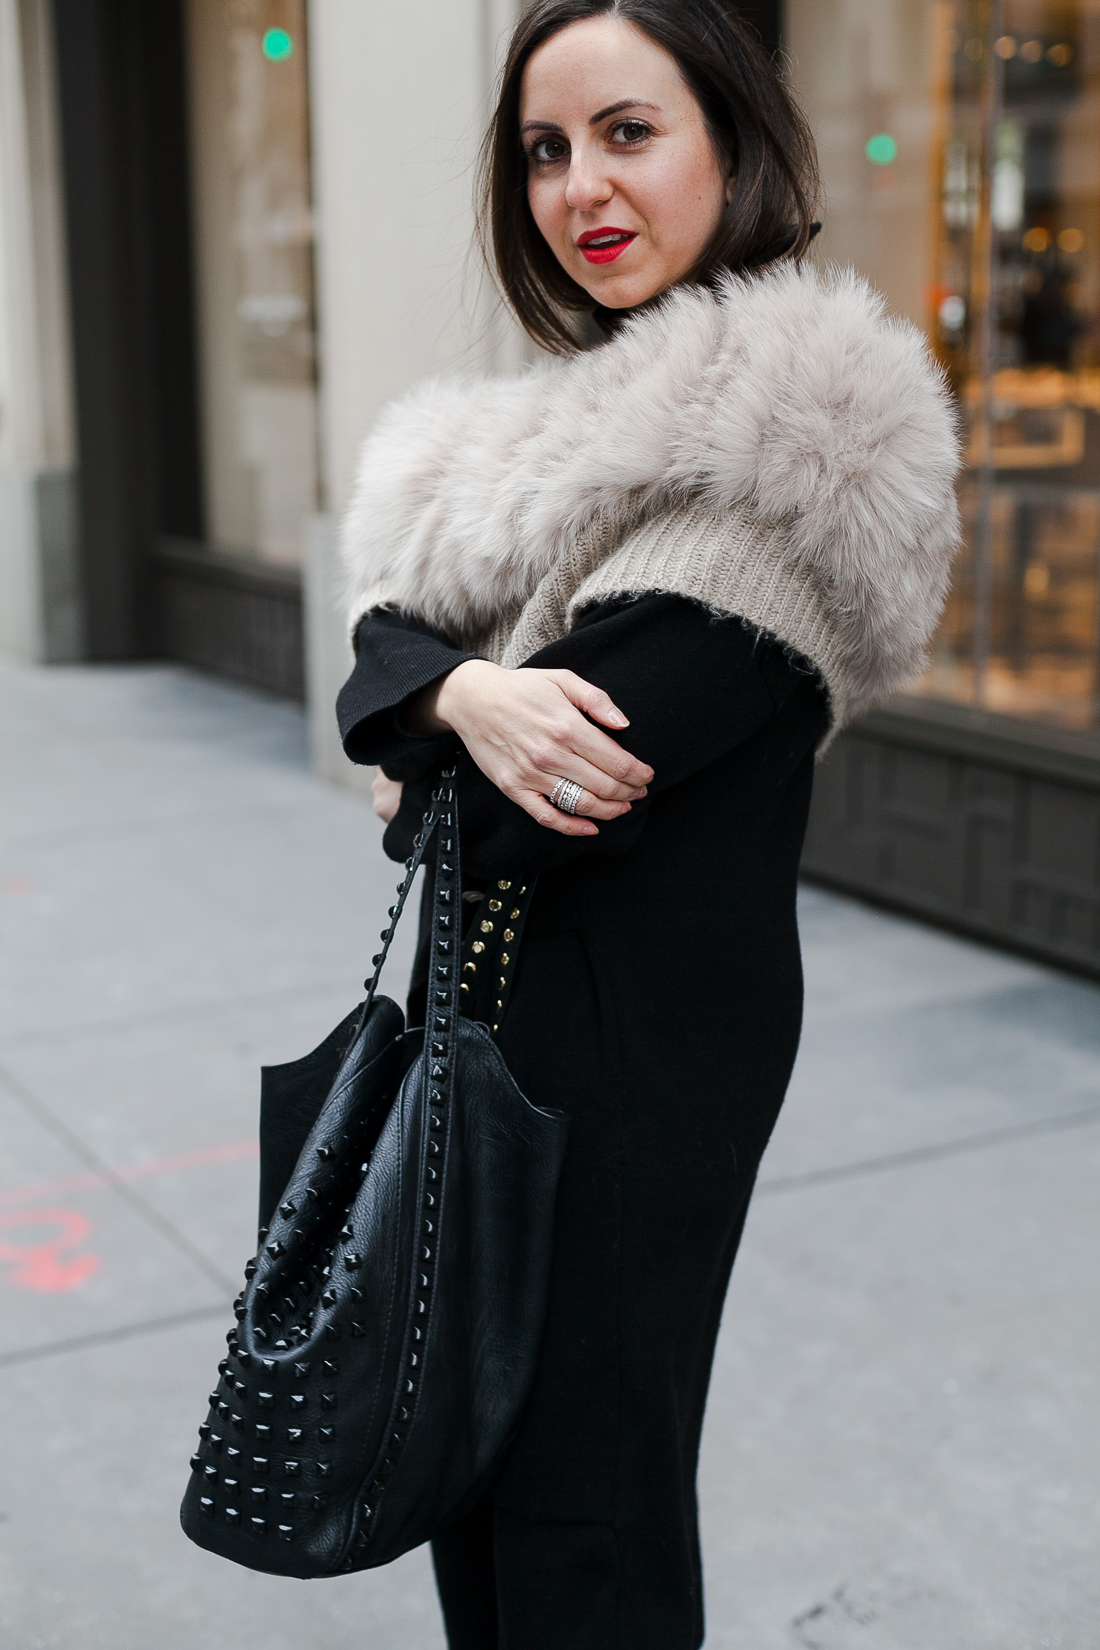 Yana Frigelis of NoMad Luxuries wearing an all black french-inspired look with a fur stole from mango